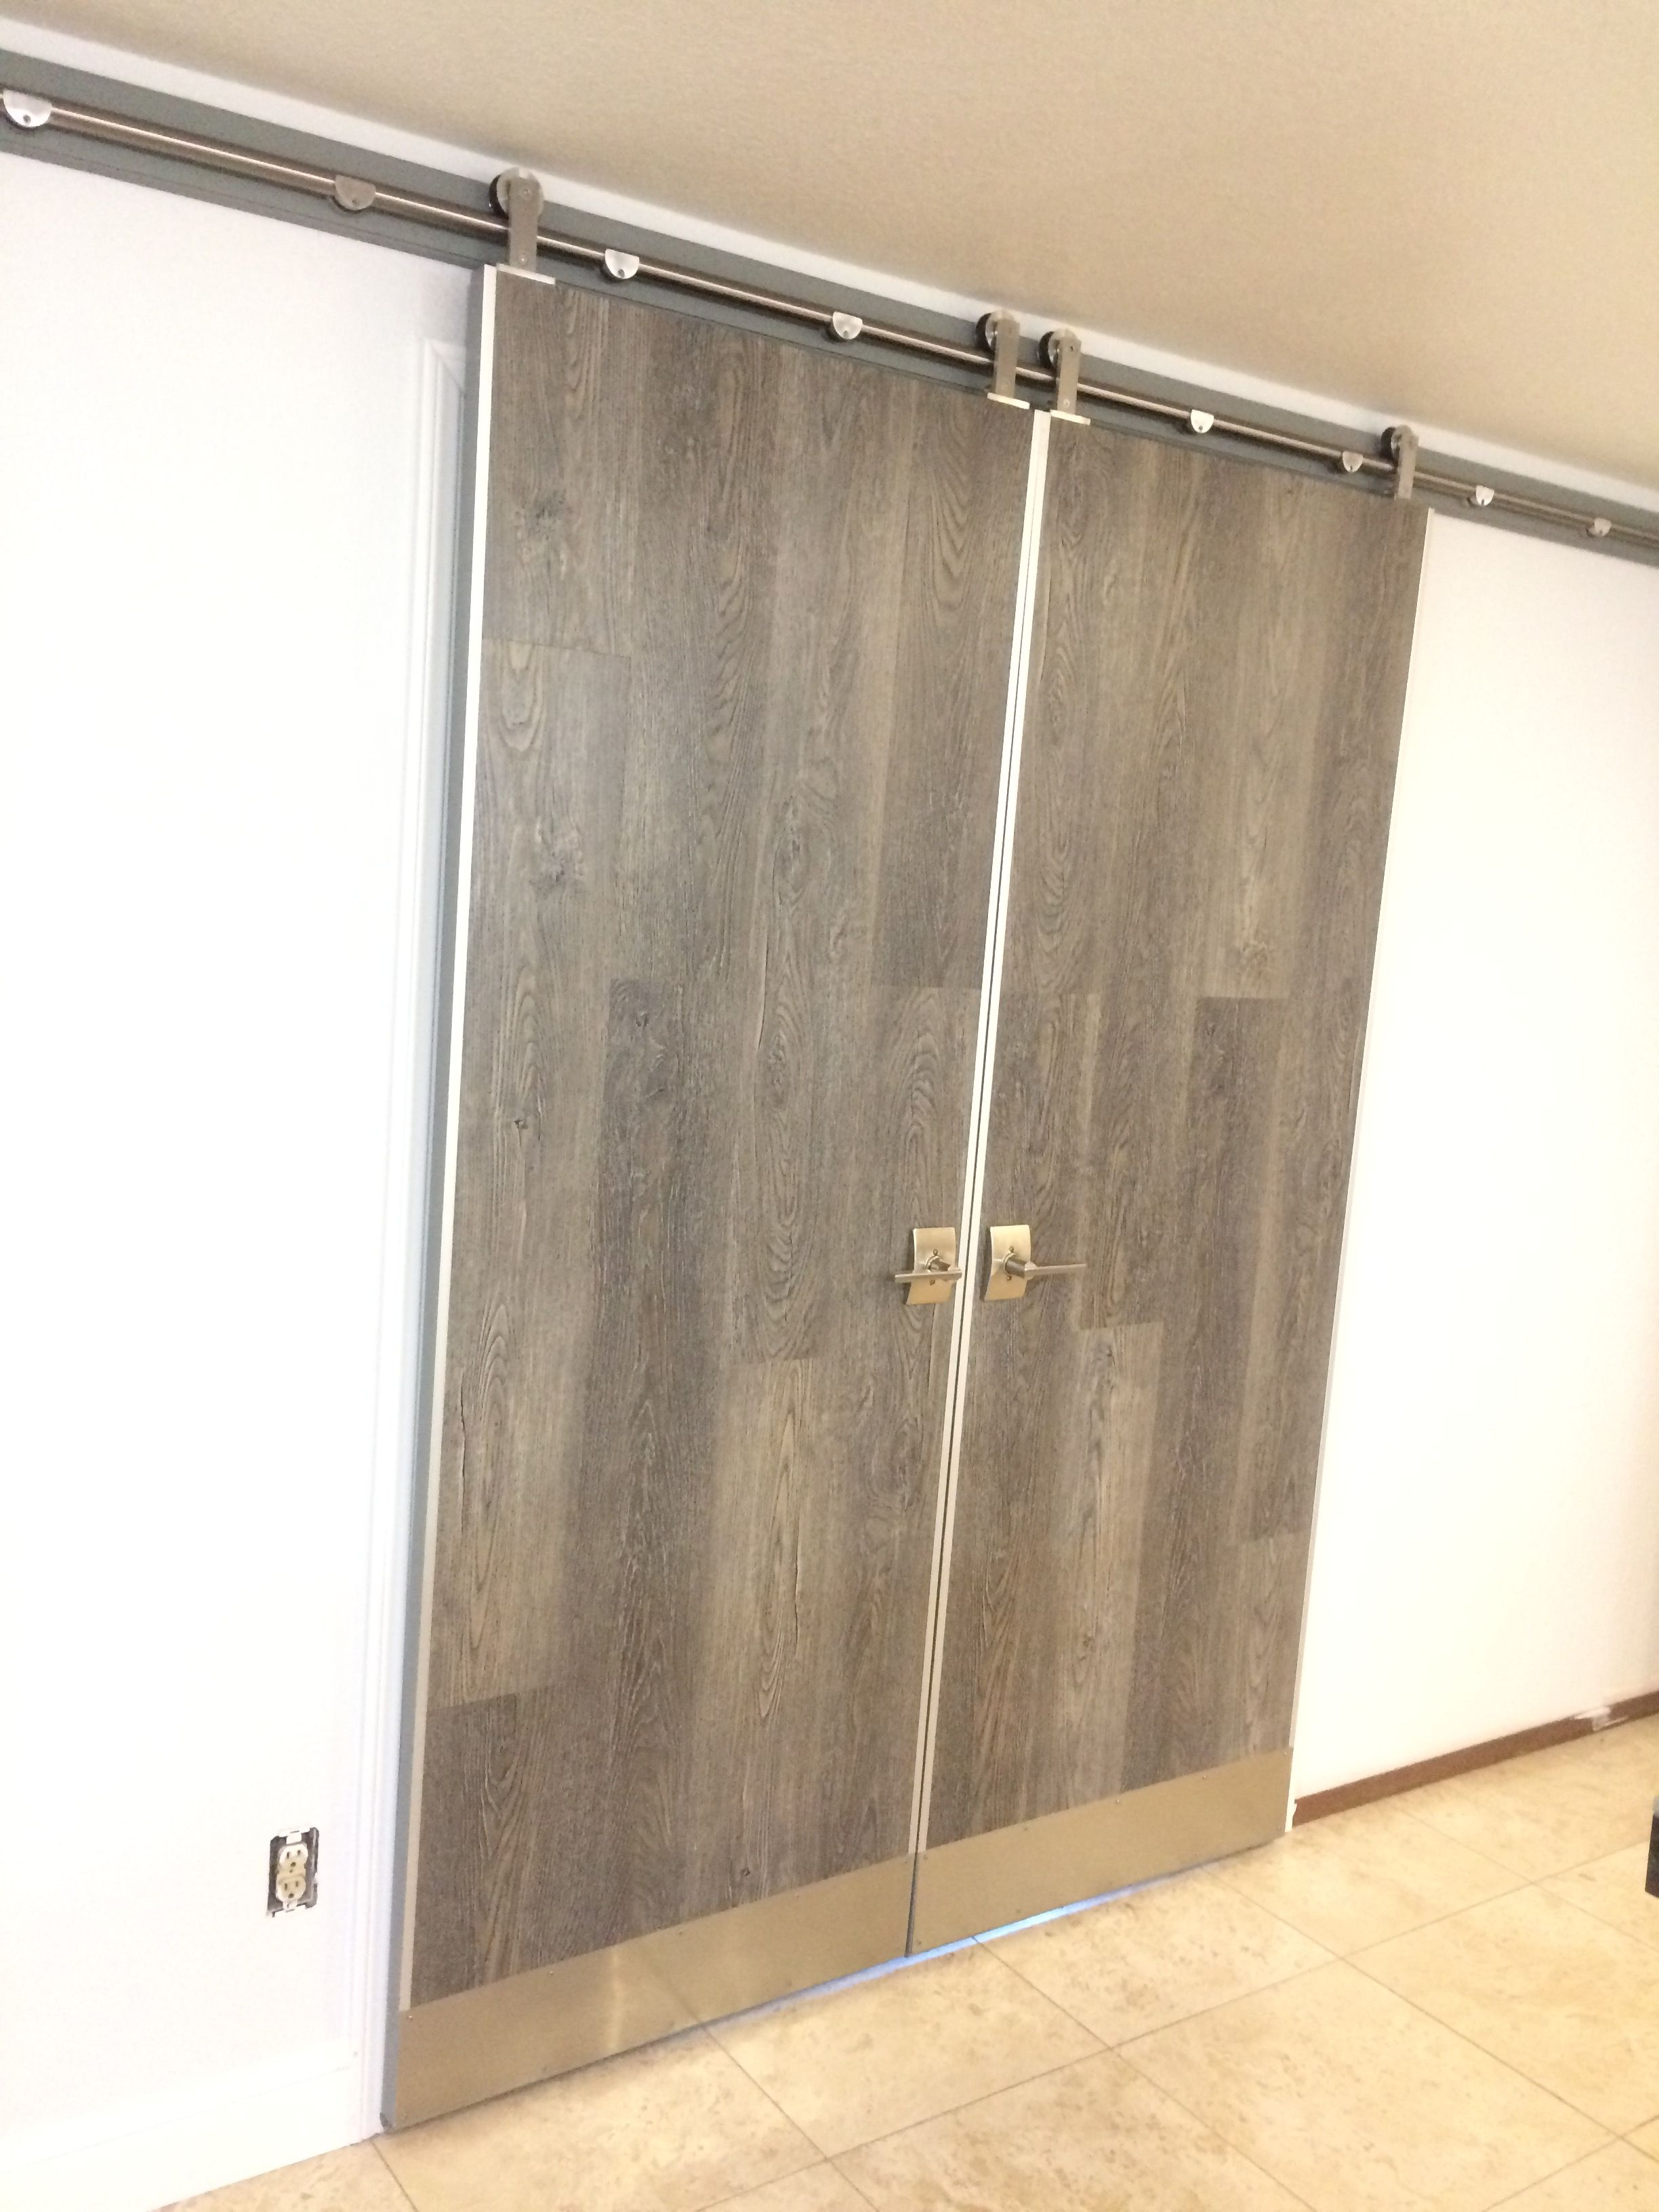 Repurposed Old Doors To Create These Beautiful Double Rustic Modern